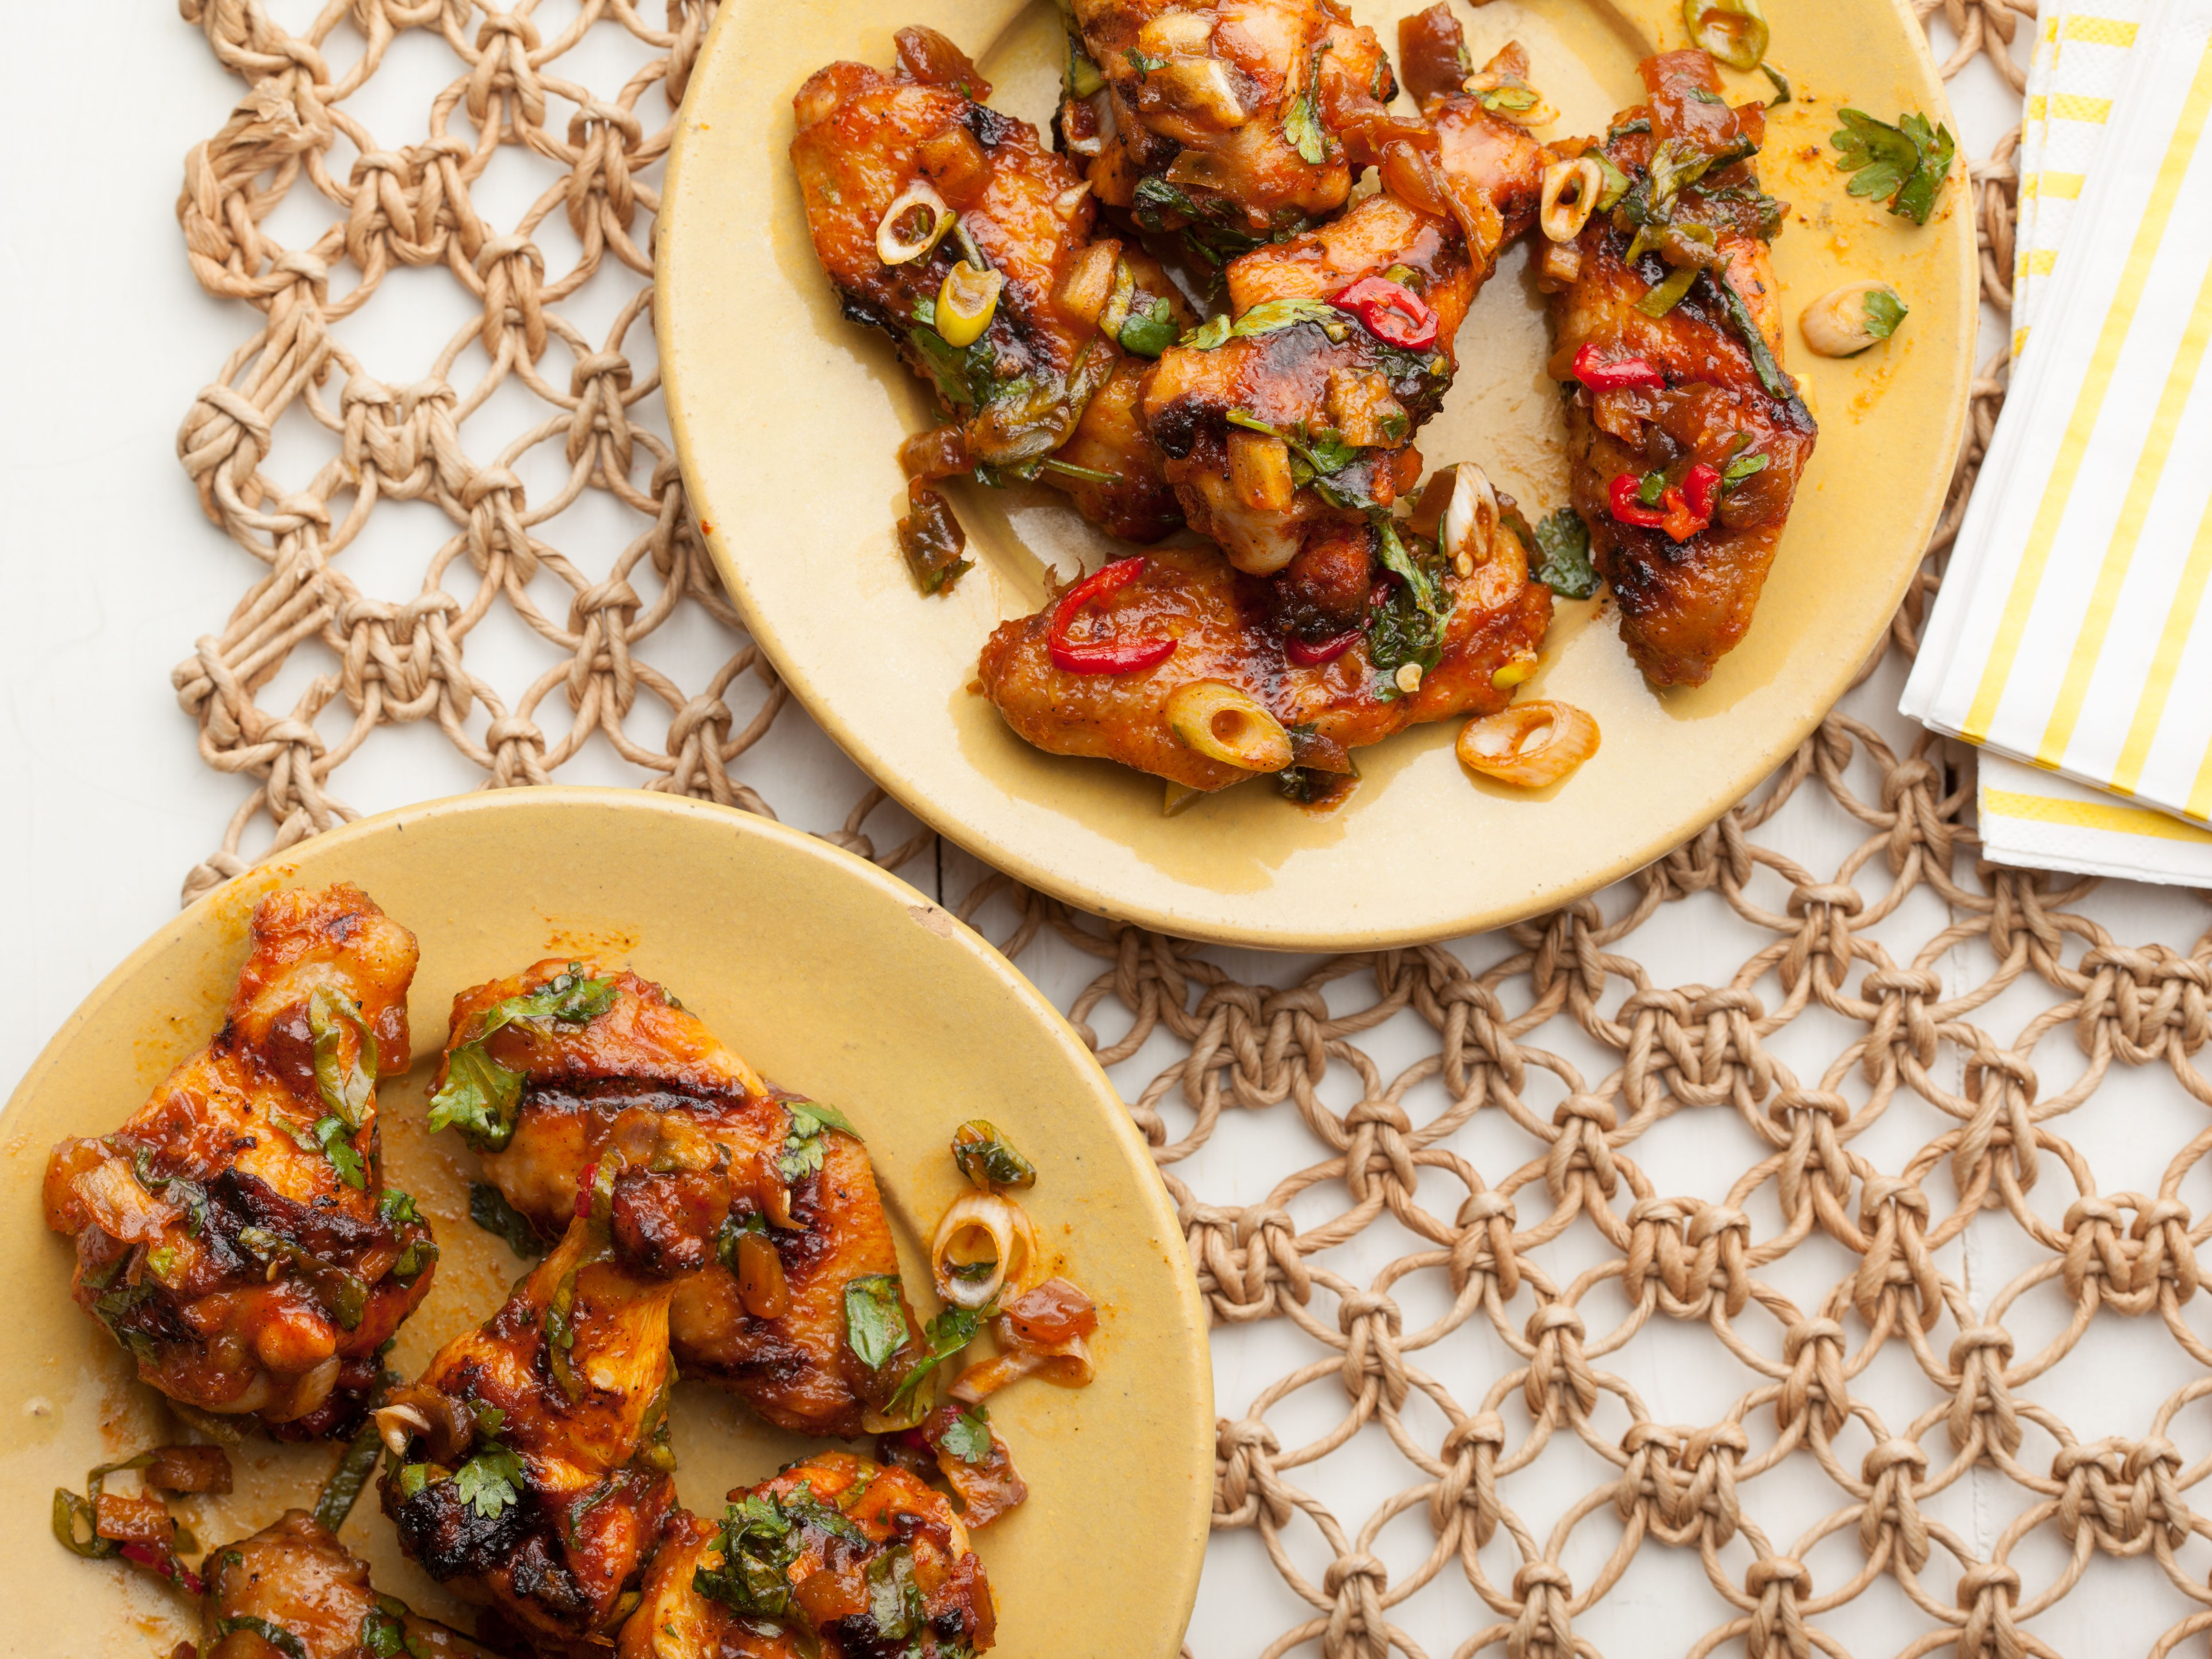 Smoky grilled chicken wings with pickled red chiles dates and fresh smoky grilled chicken wings with pickled red chiles dates and fresh mint recipe pinterest fresh mint guy fieri and mint recipes forumfinder Image collections